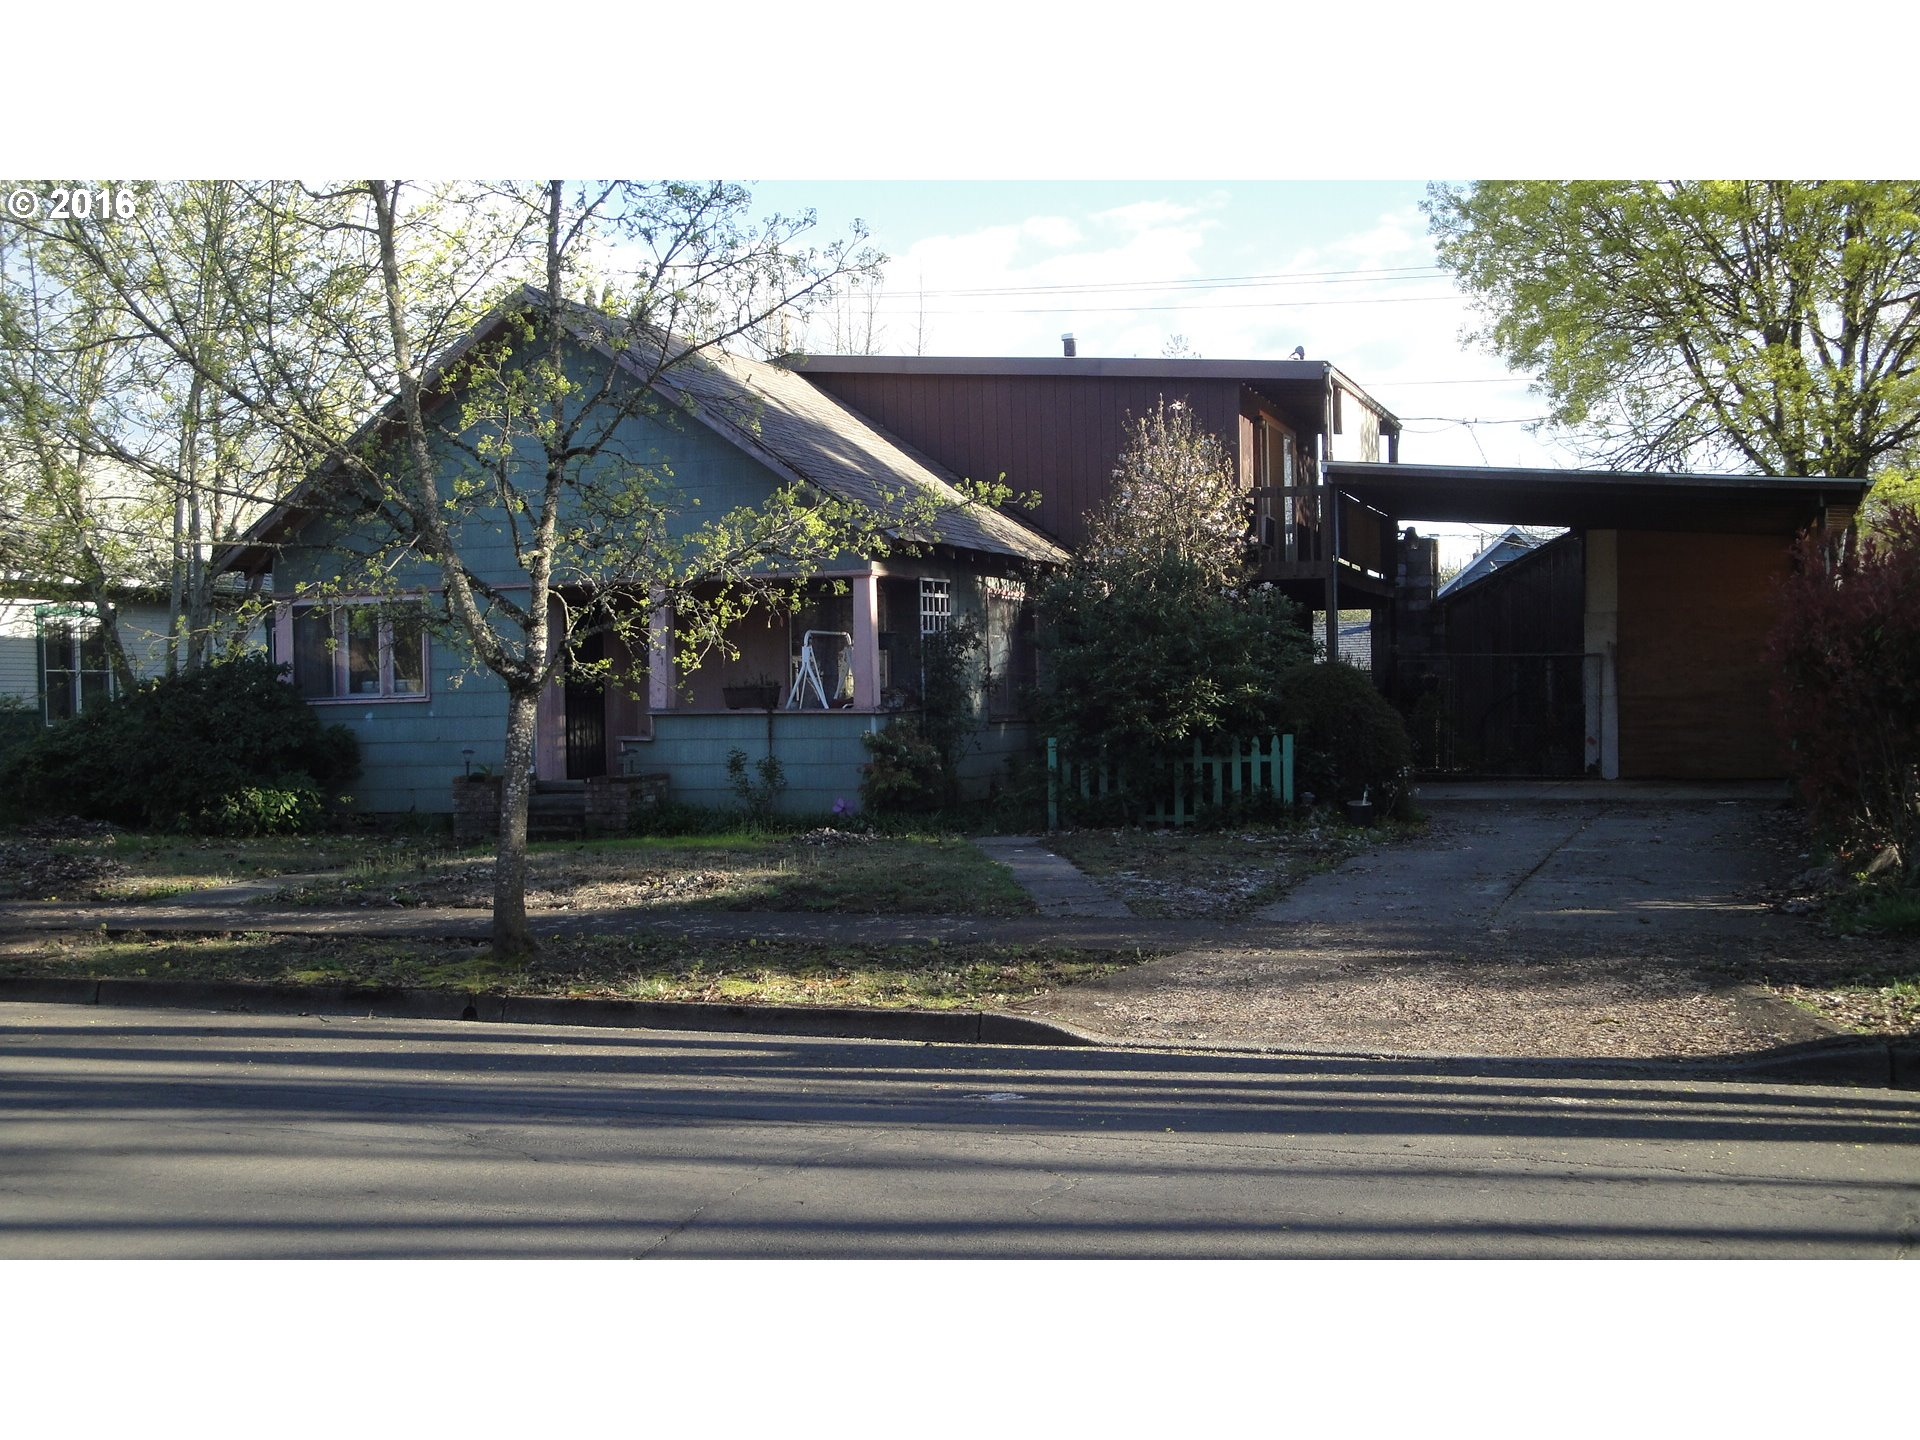 821 E St, Springfield, OR